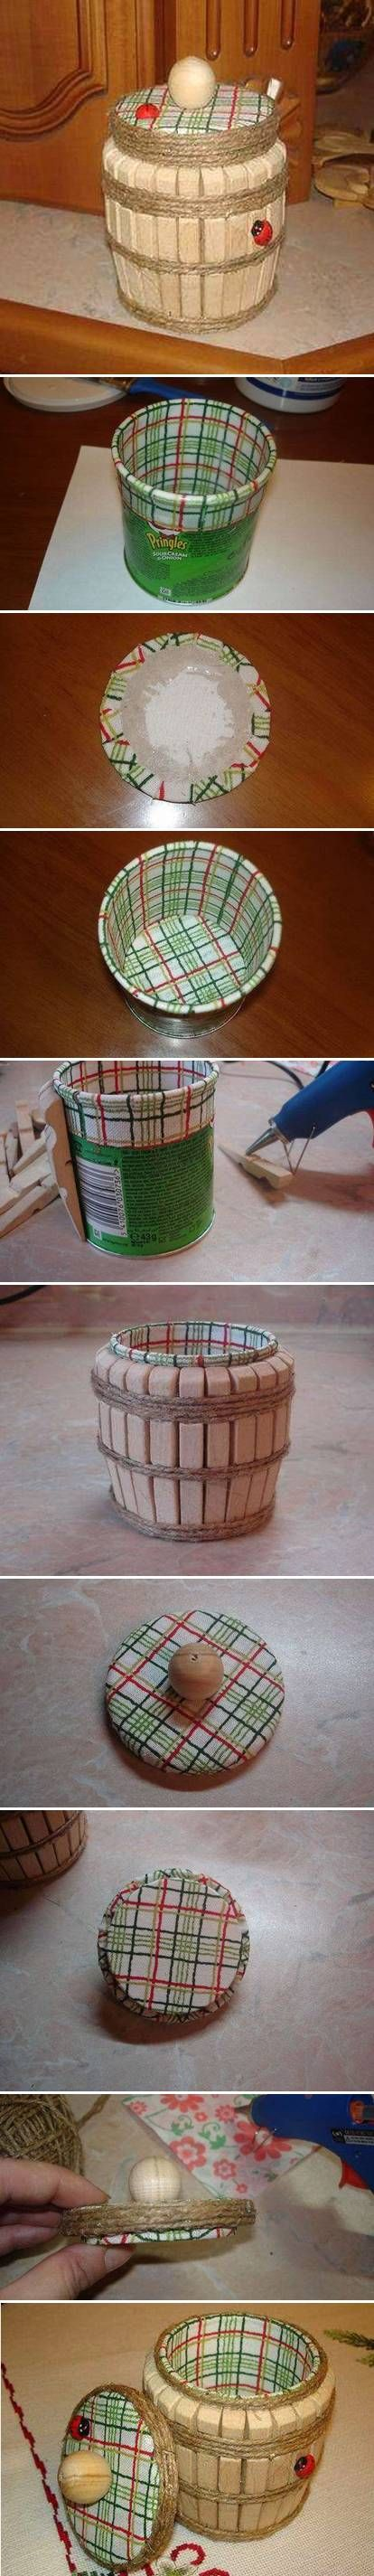 DIY Clothespin Barrel DIY Clothespin Barrel